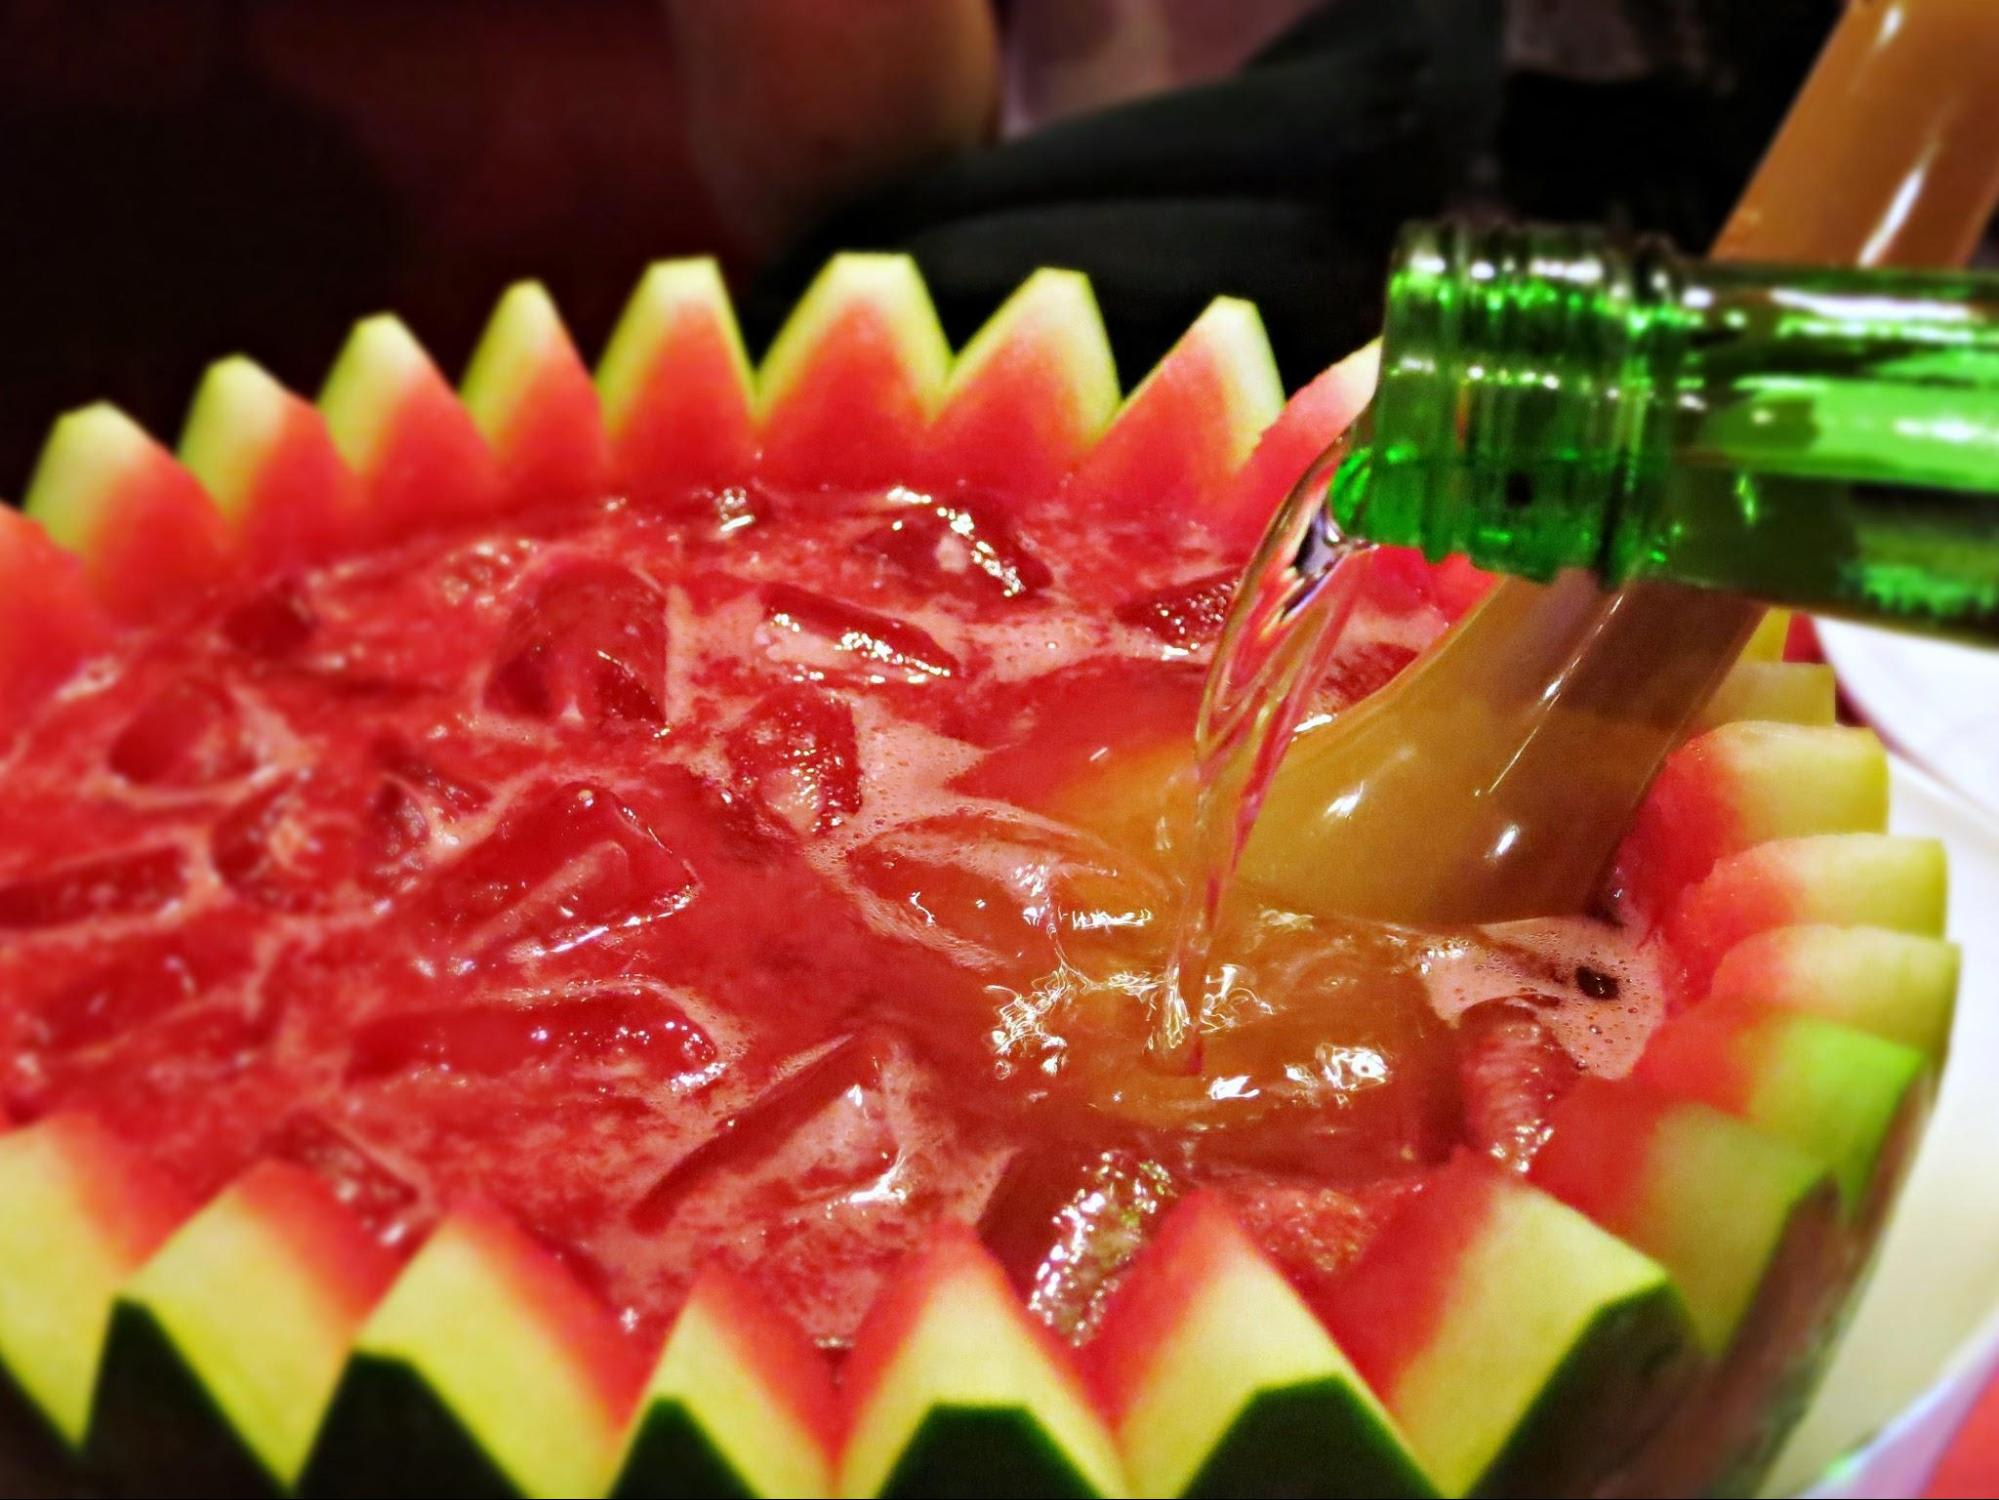 Soju poured into shell of watermelon